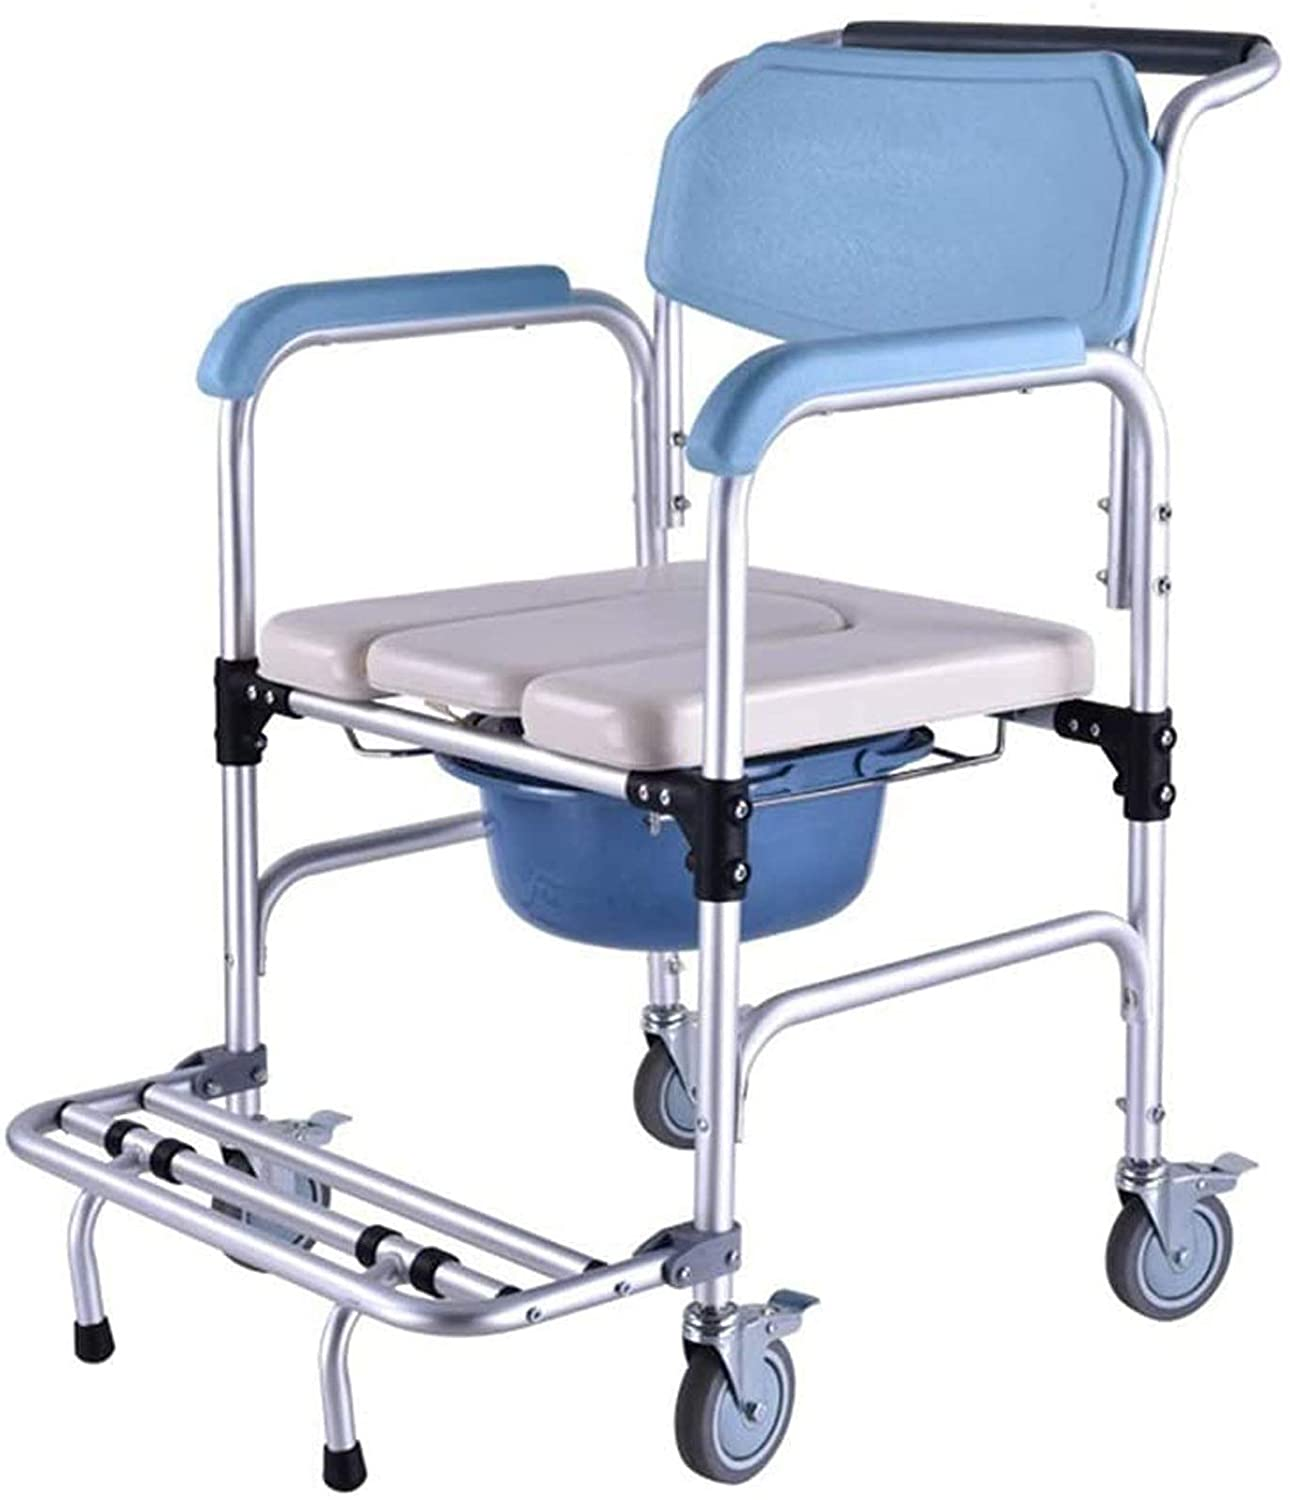 ZQTHL Shower Commode Mobile Chair,Shower Chair with Wheels, Commode Chair and Padded Toilet Seat, Medical Waterproof Shower Transport Chair with Brakes